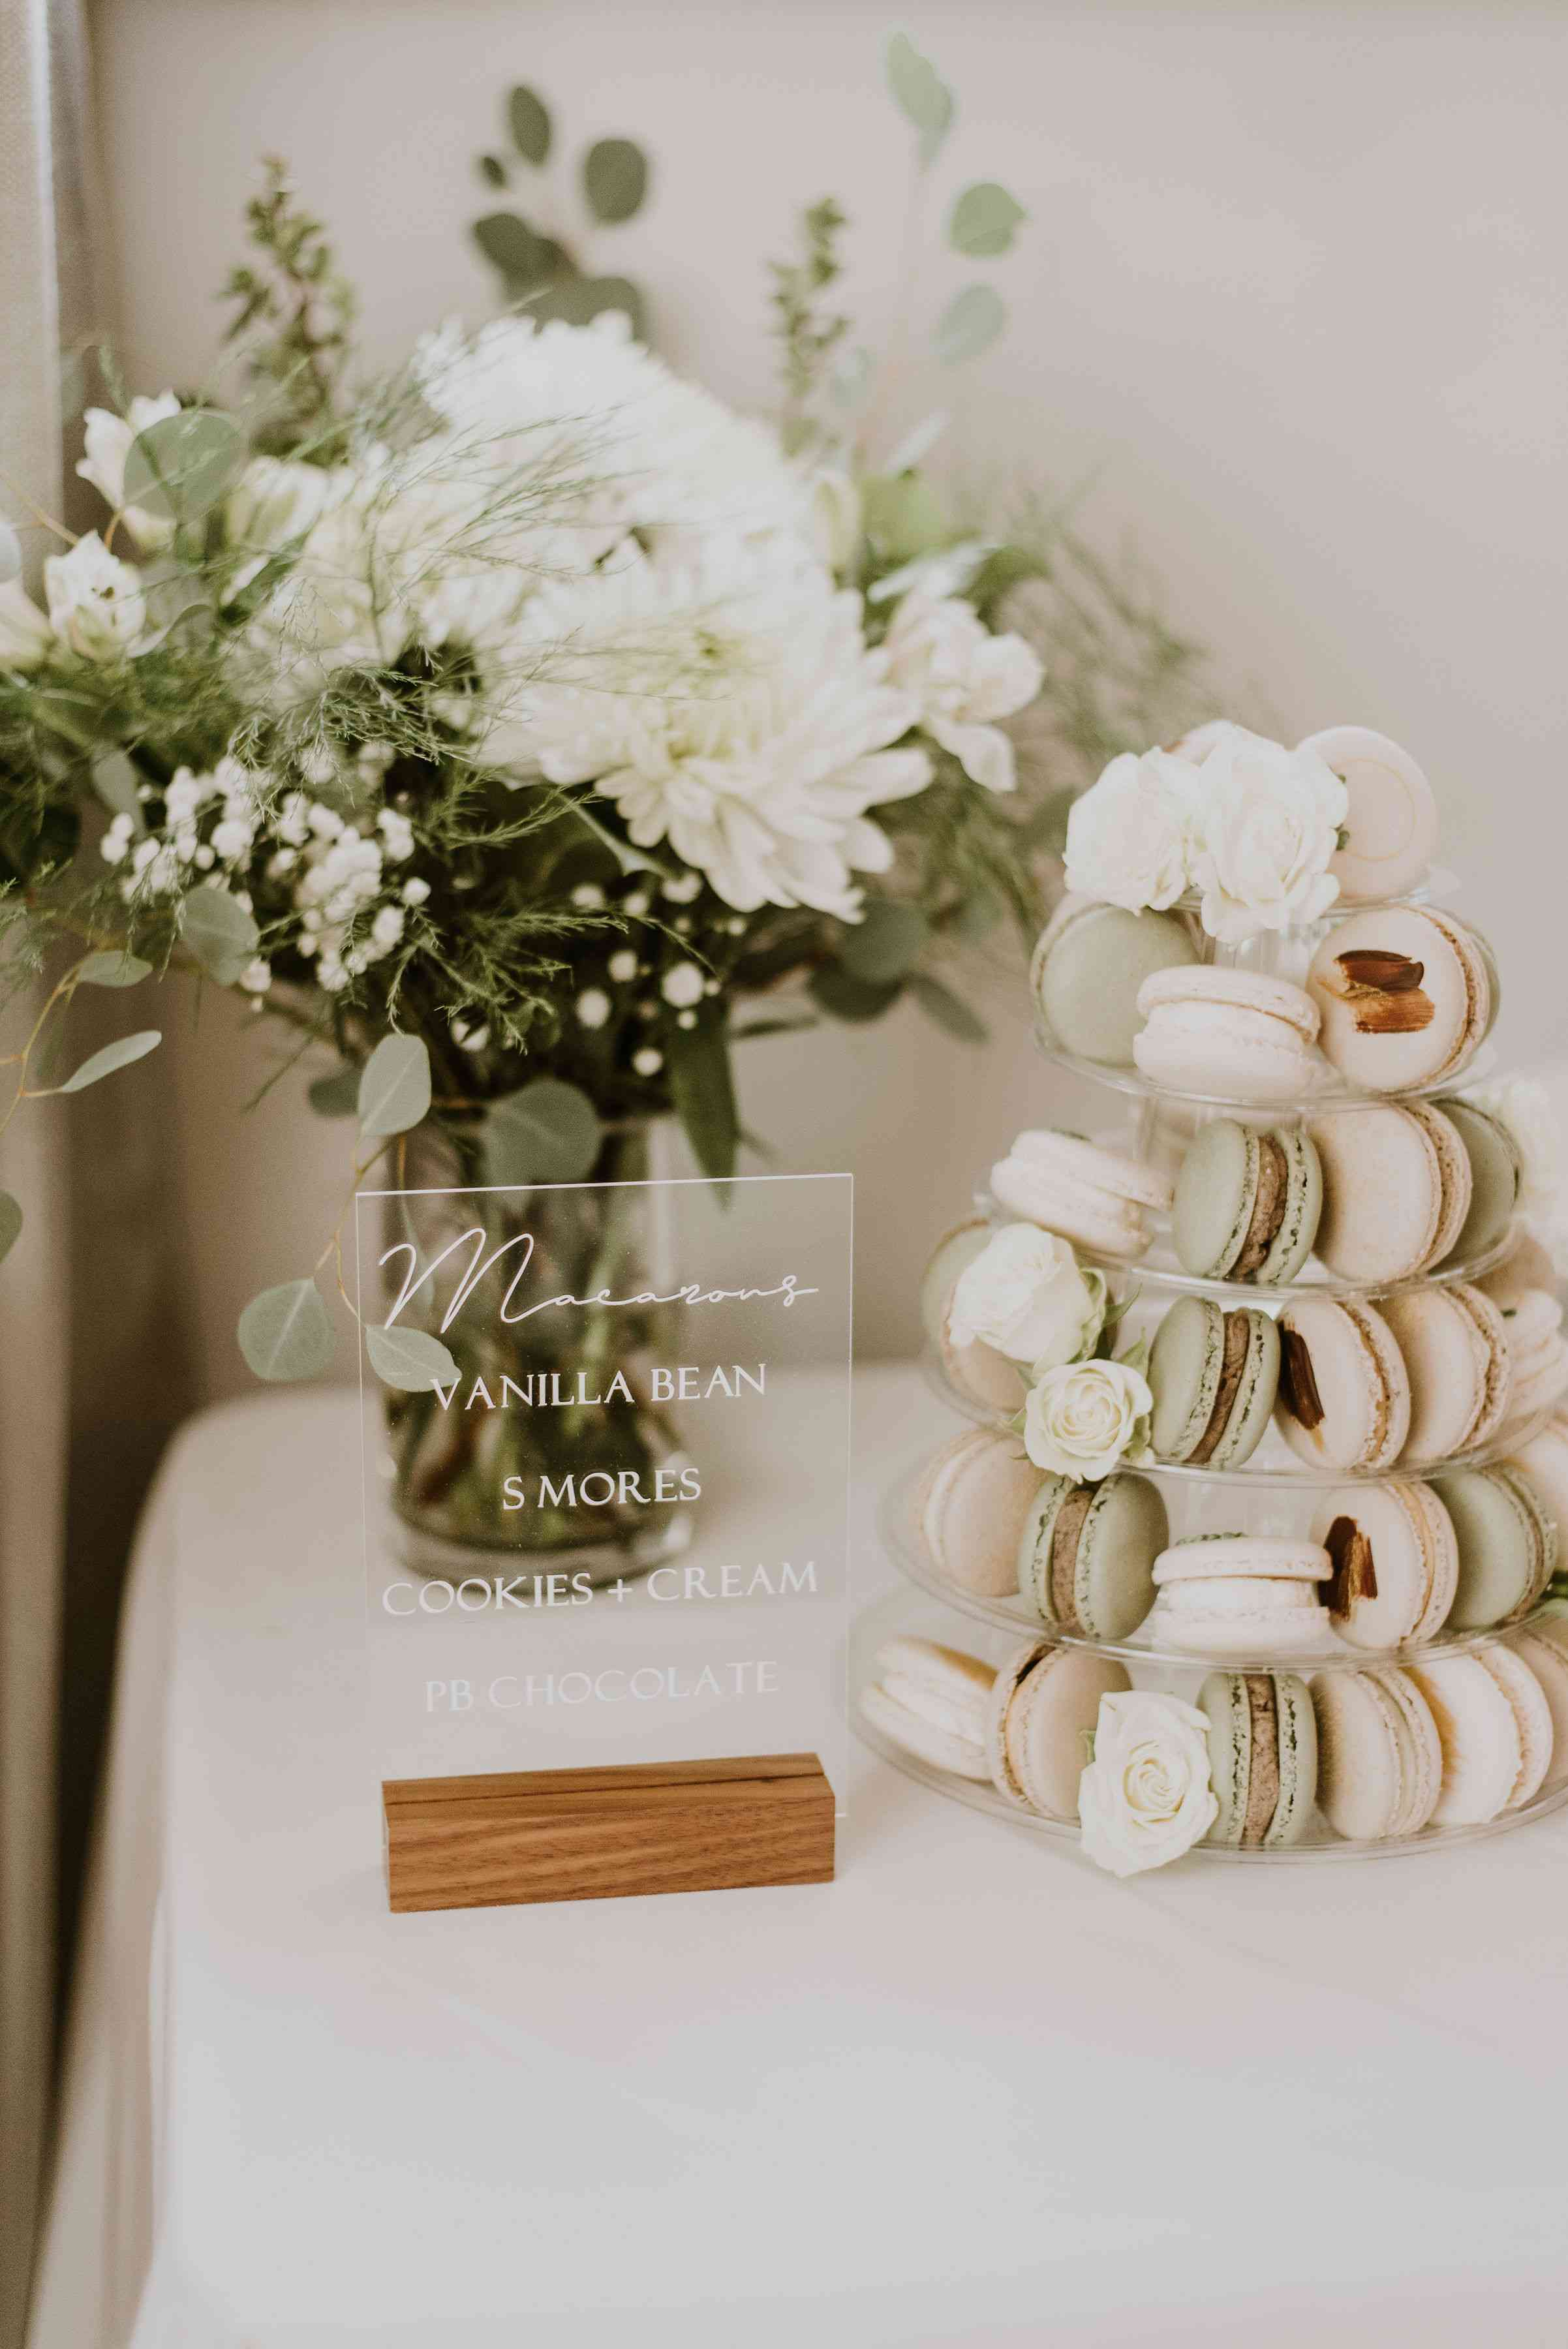 Macaron tower with acrylic sign